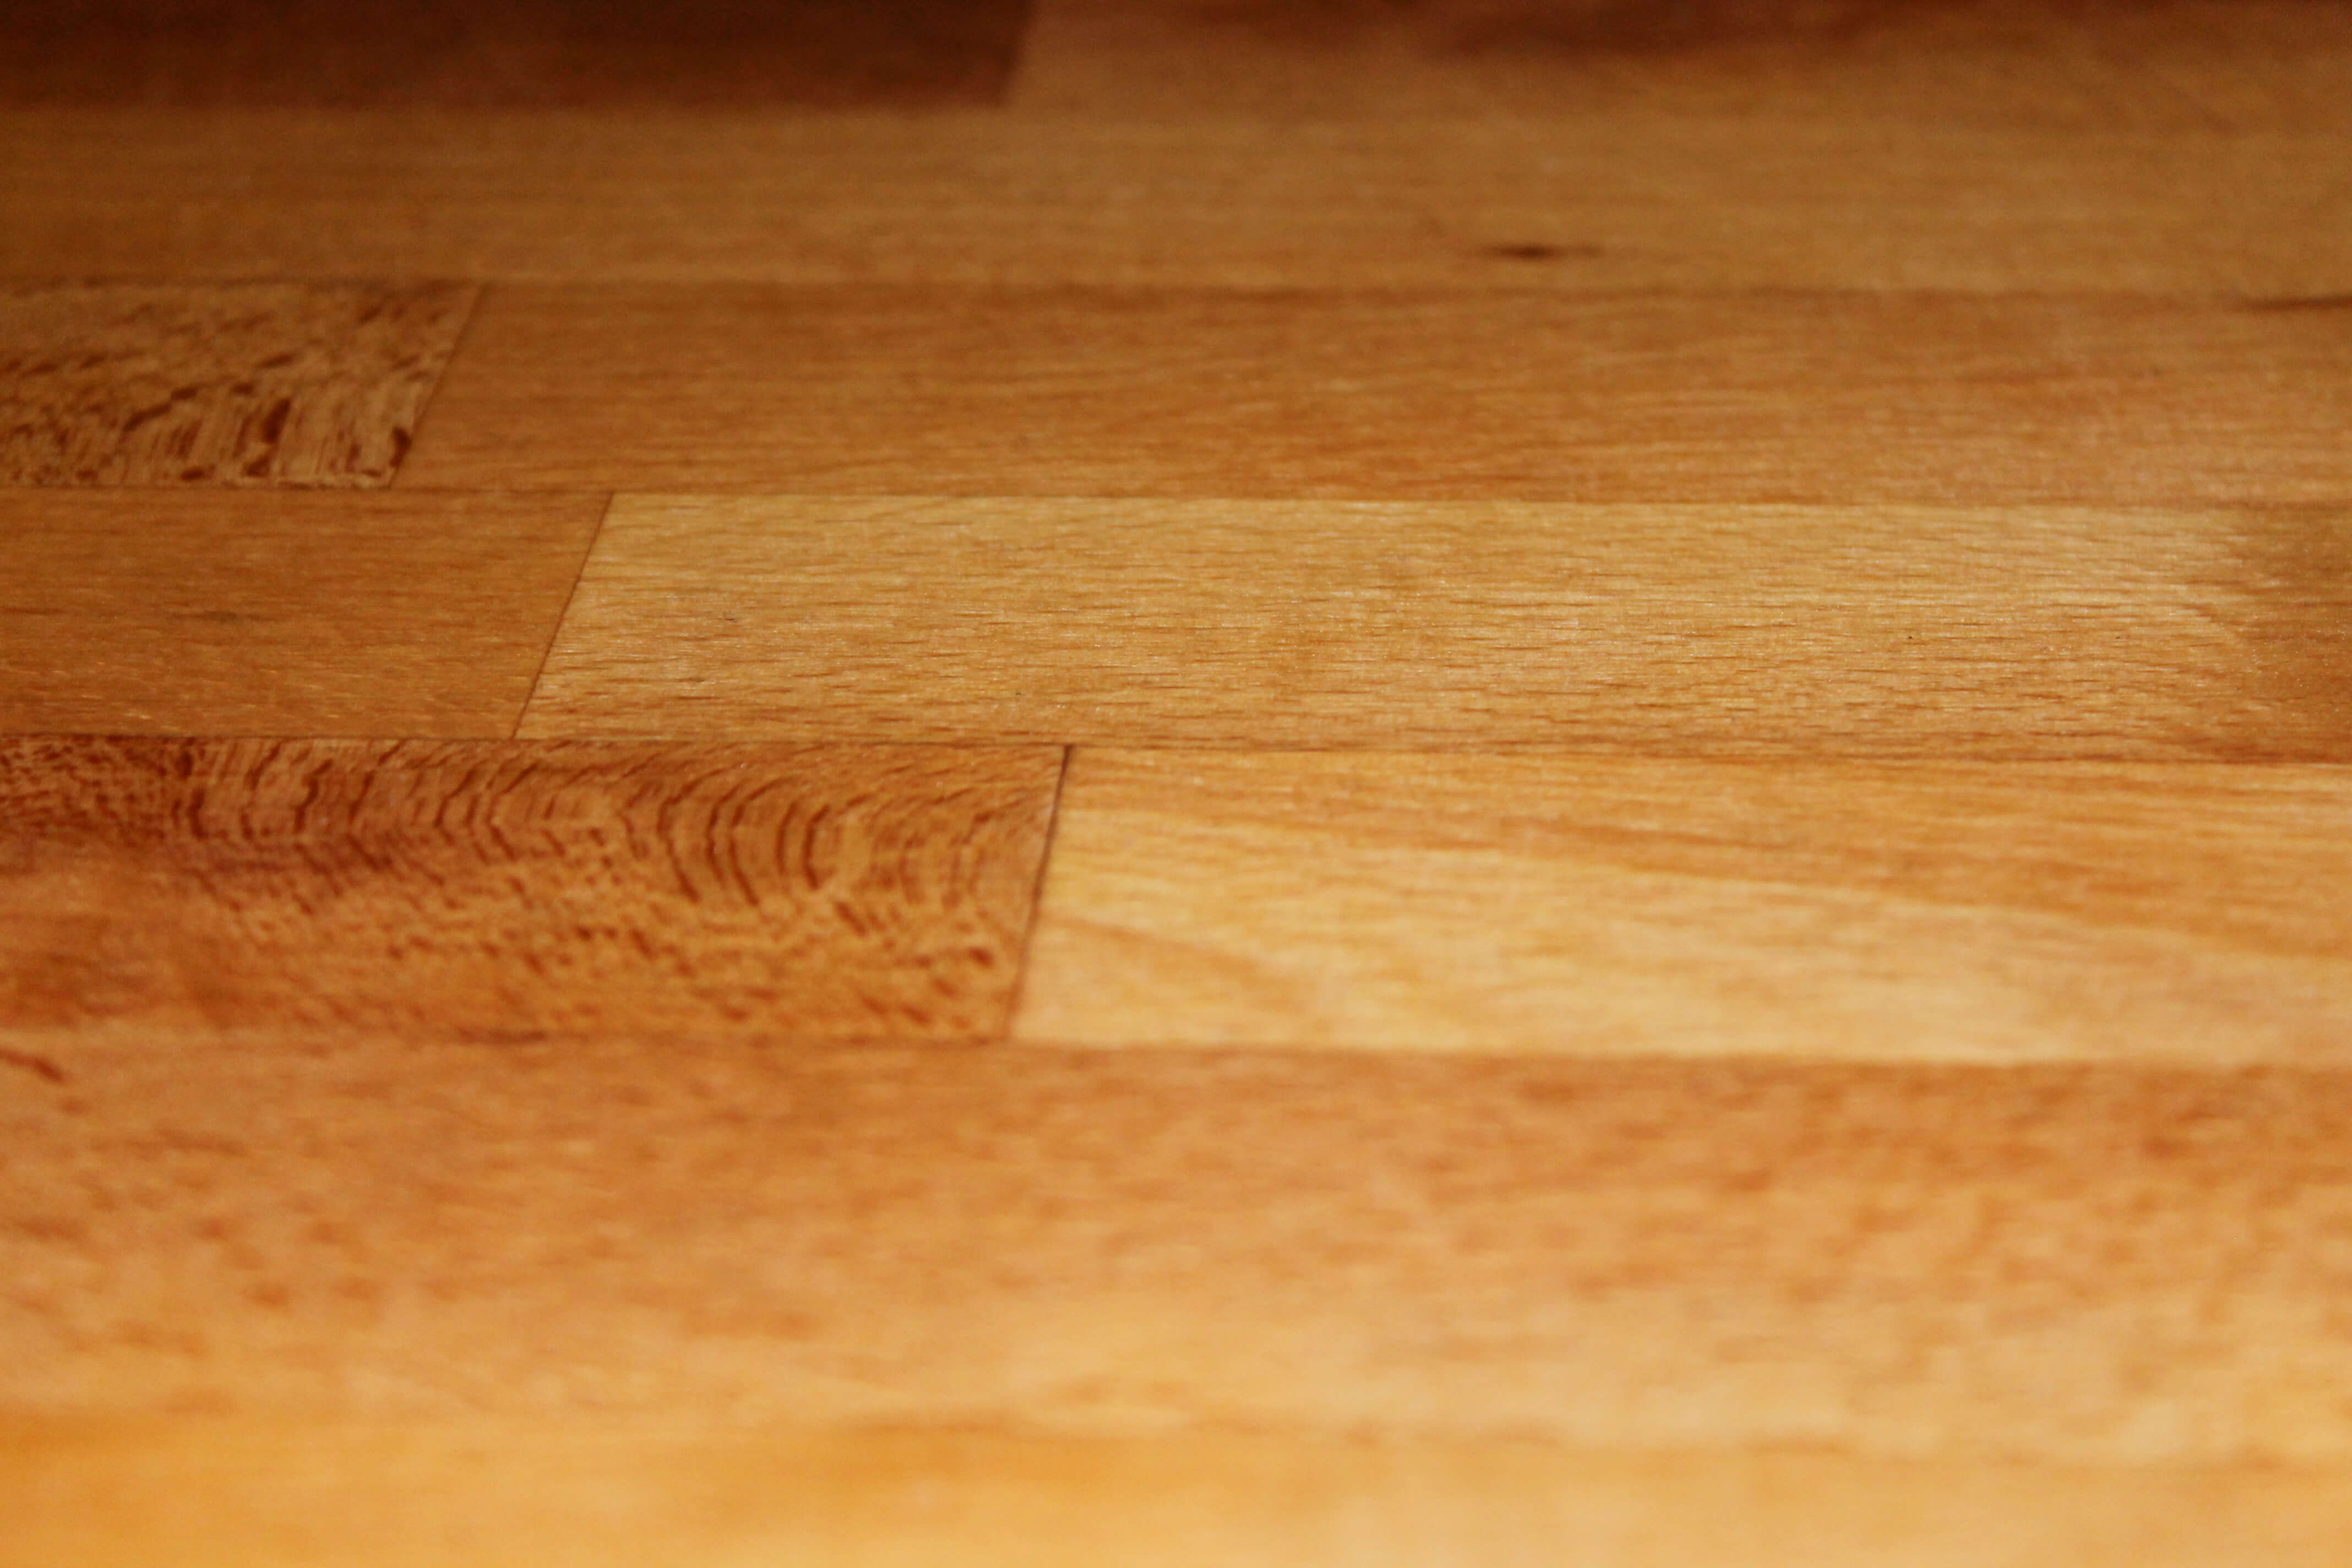 How to Clean & Condition a Wooden Cutting Board